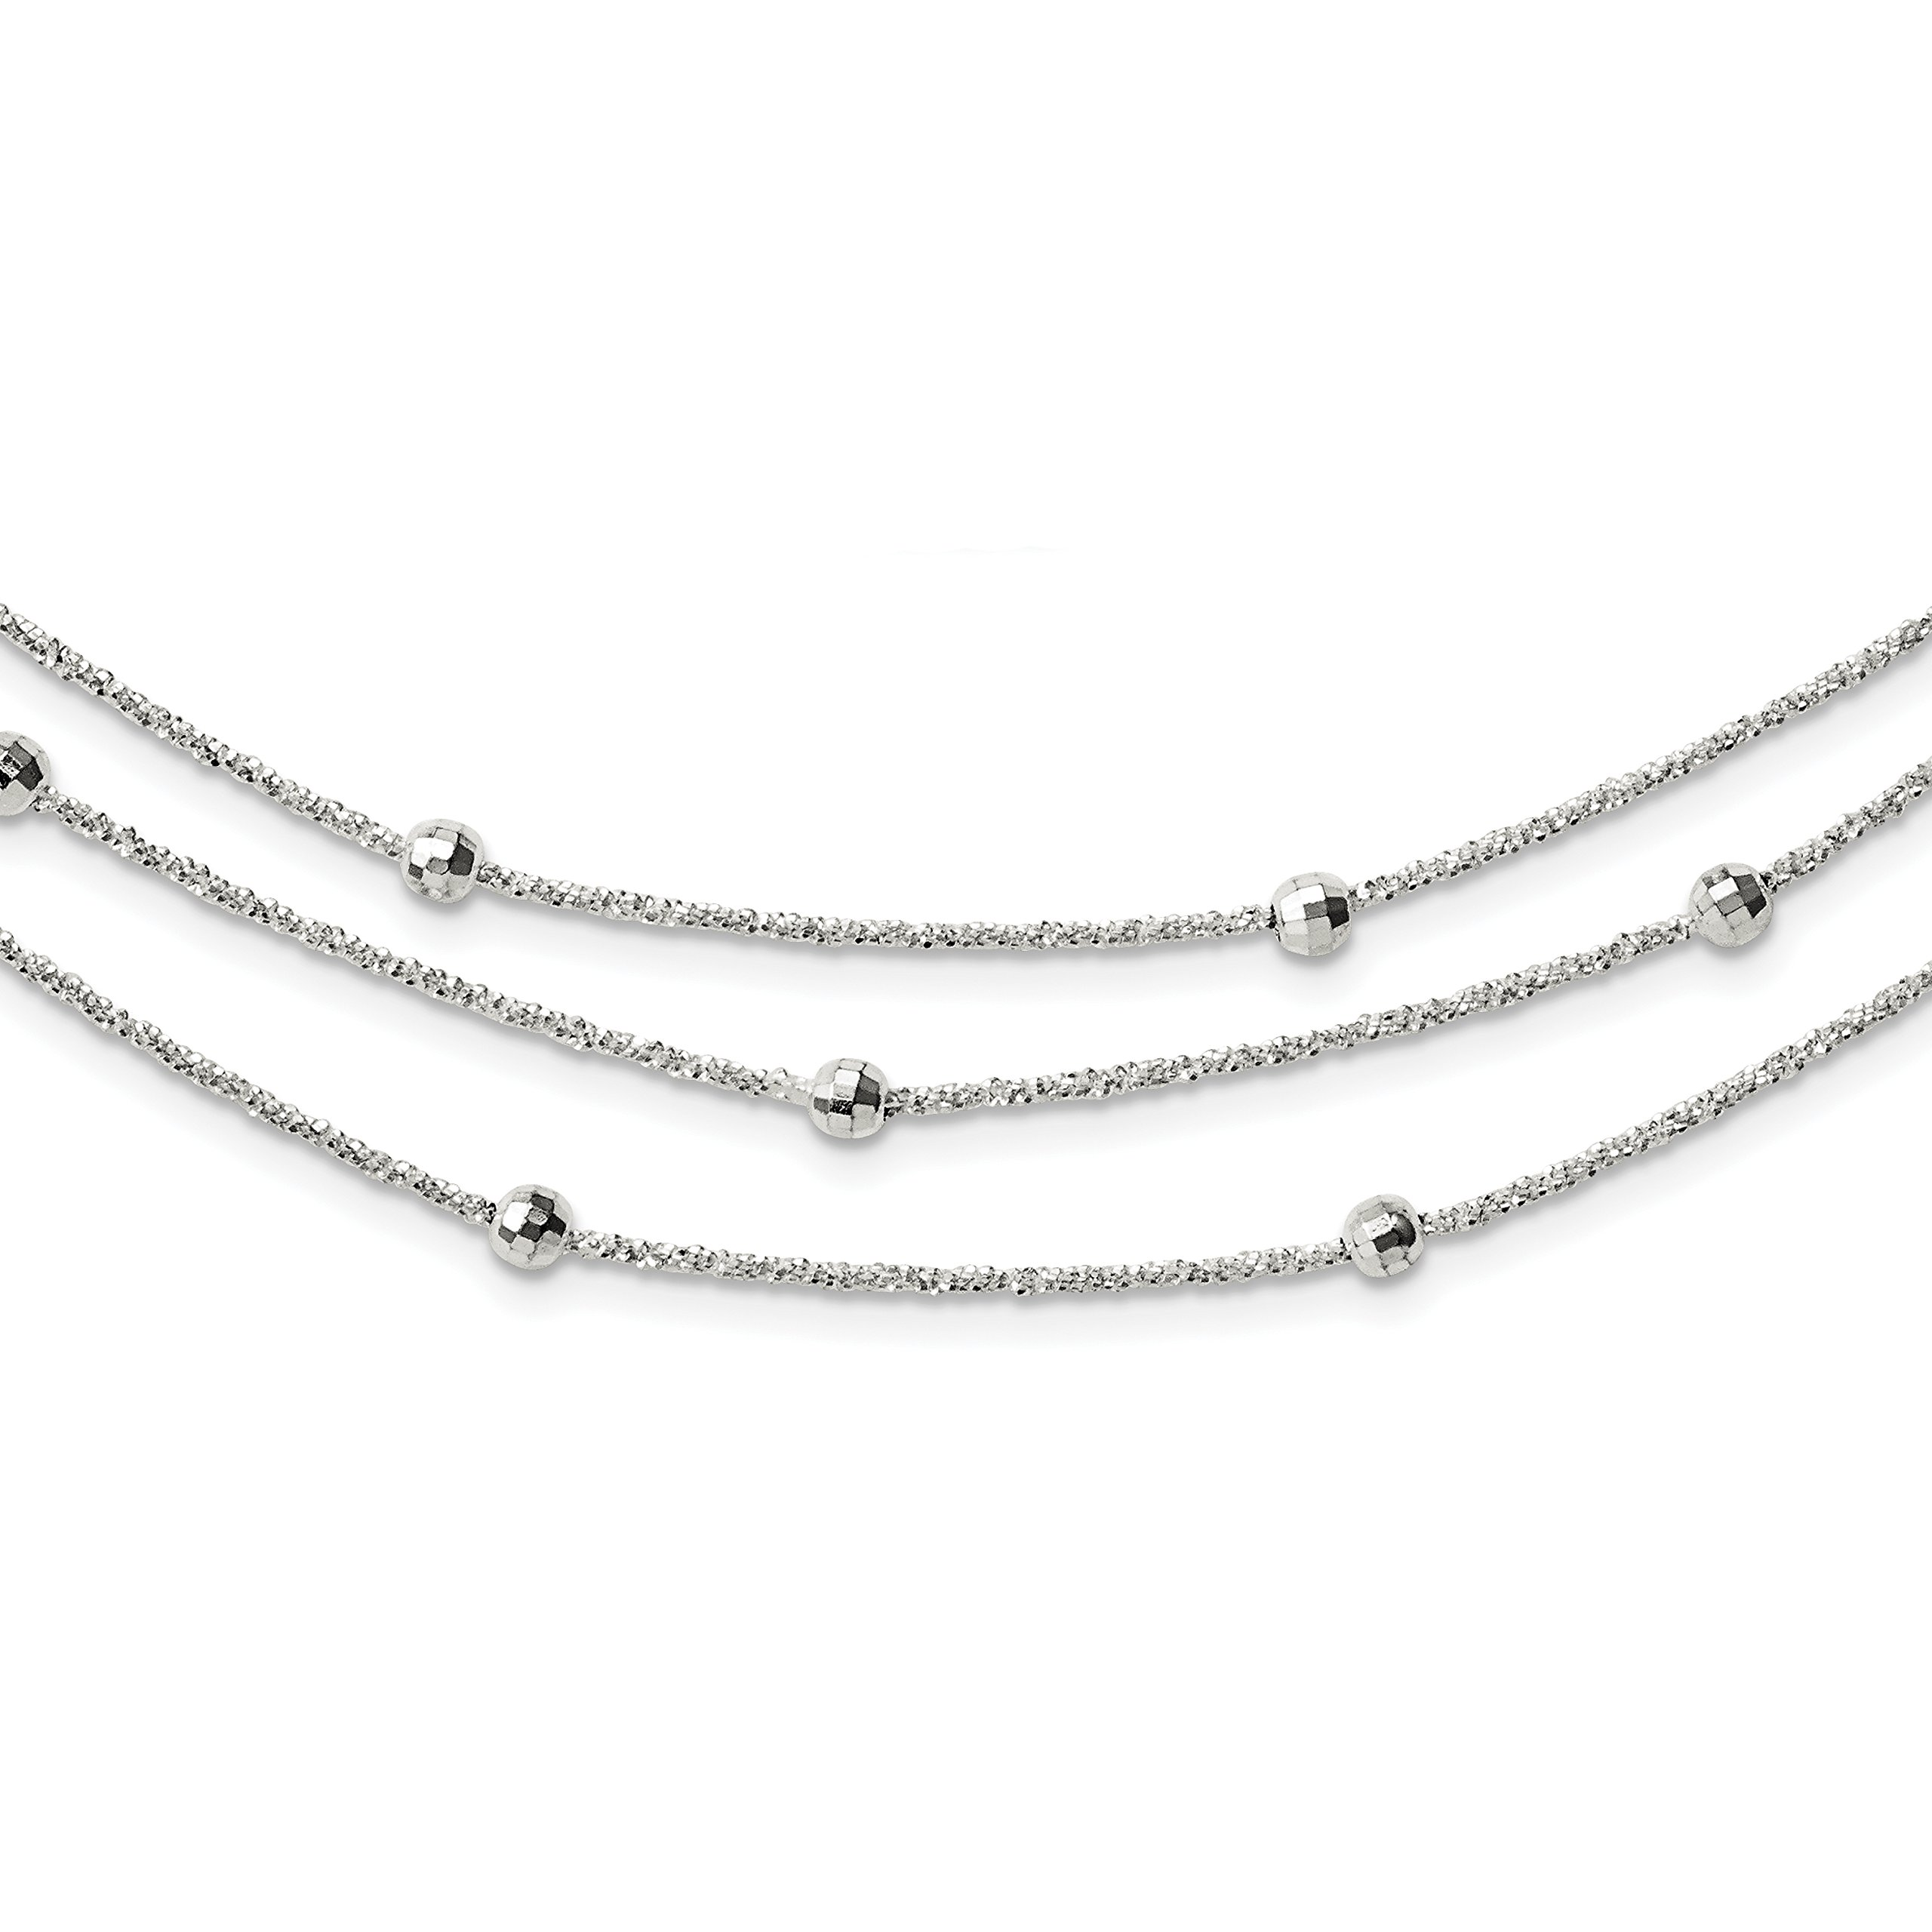 ICE CARATS 925 Sterling Silver 3 Strand Beaded 2in. Extension Chain Necklace Multi-str Bead Station Fine Jewelry Gift For Women Heart